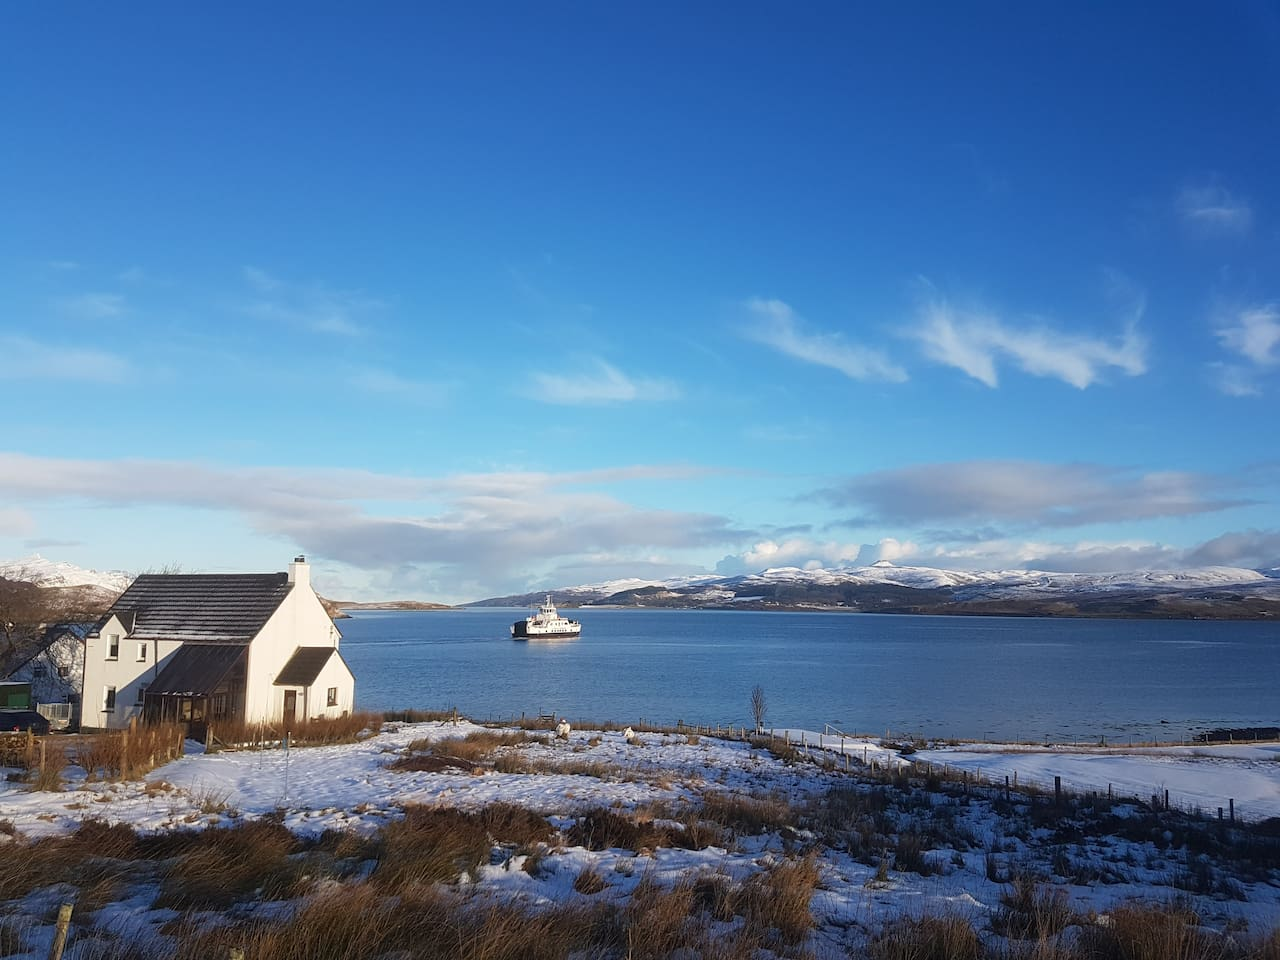 View of Dun Caan with the Raasay ferry